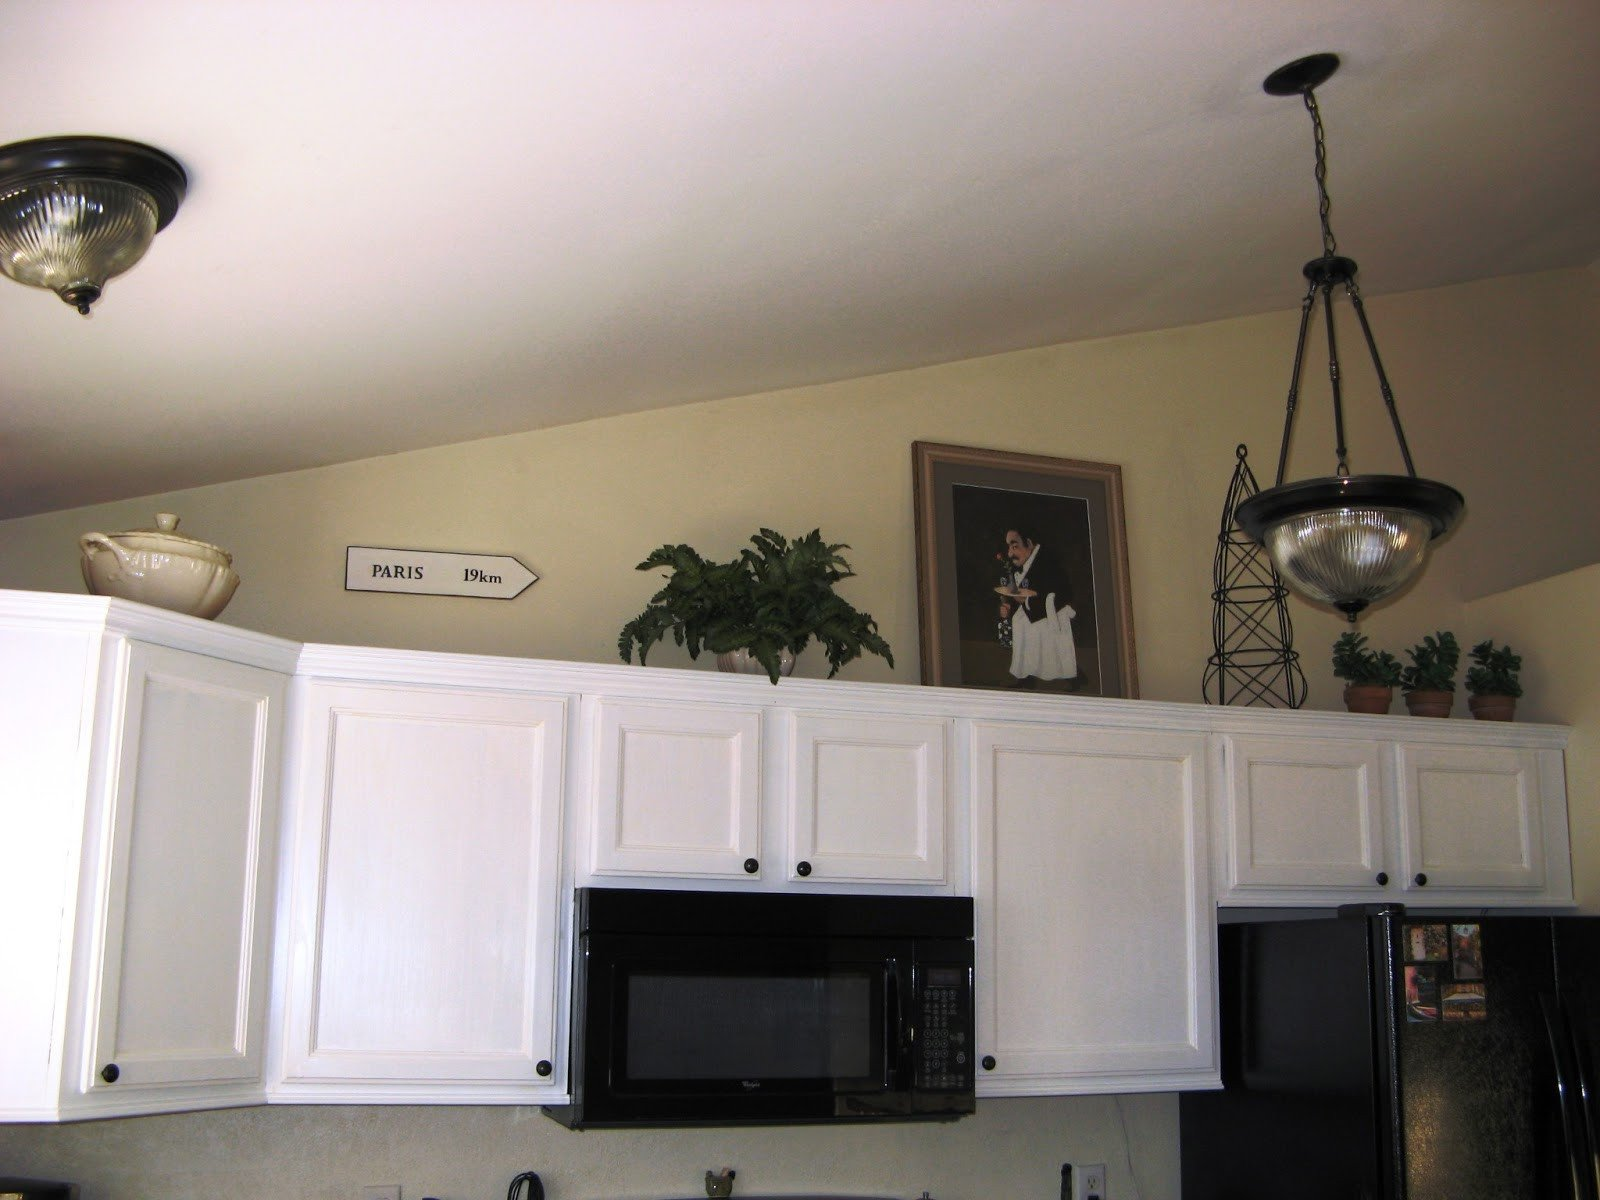 Top Of Kitchen Cabinets Decor Luxury French Hollow Farm Decorating Over the Cabinets Not Over the top